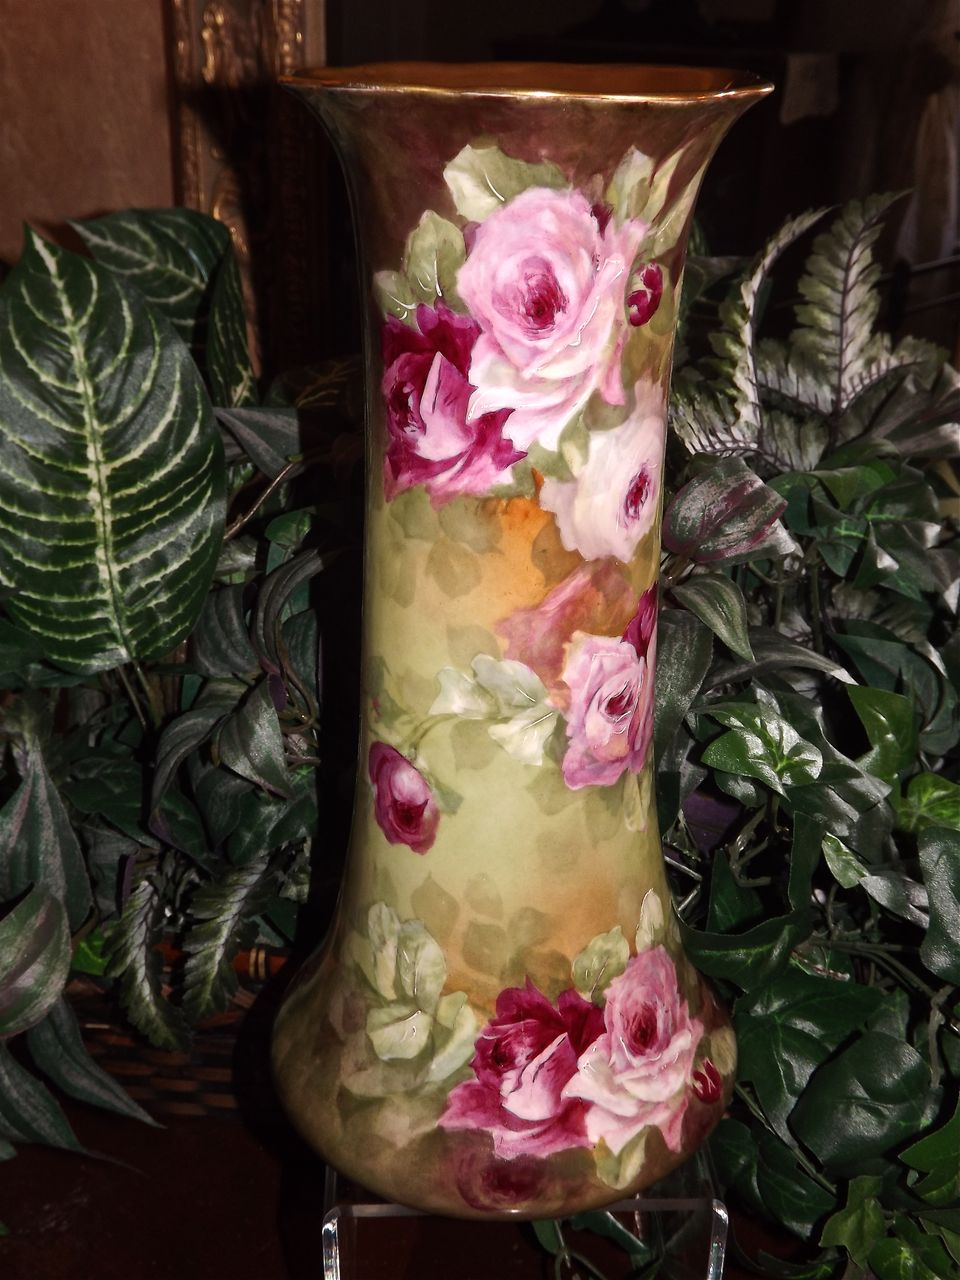 Limoges Huge Signed Trumpet Vase with Pink/Red/White Roses and Gold Encrusted Mouth